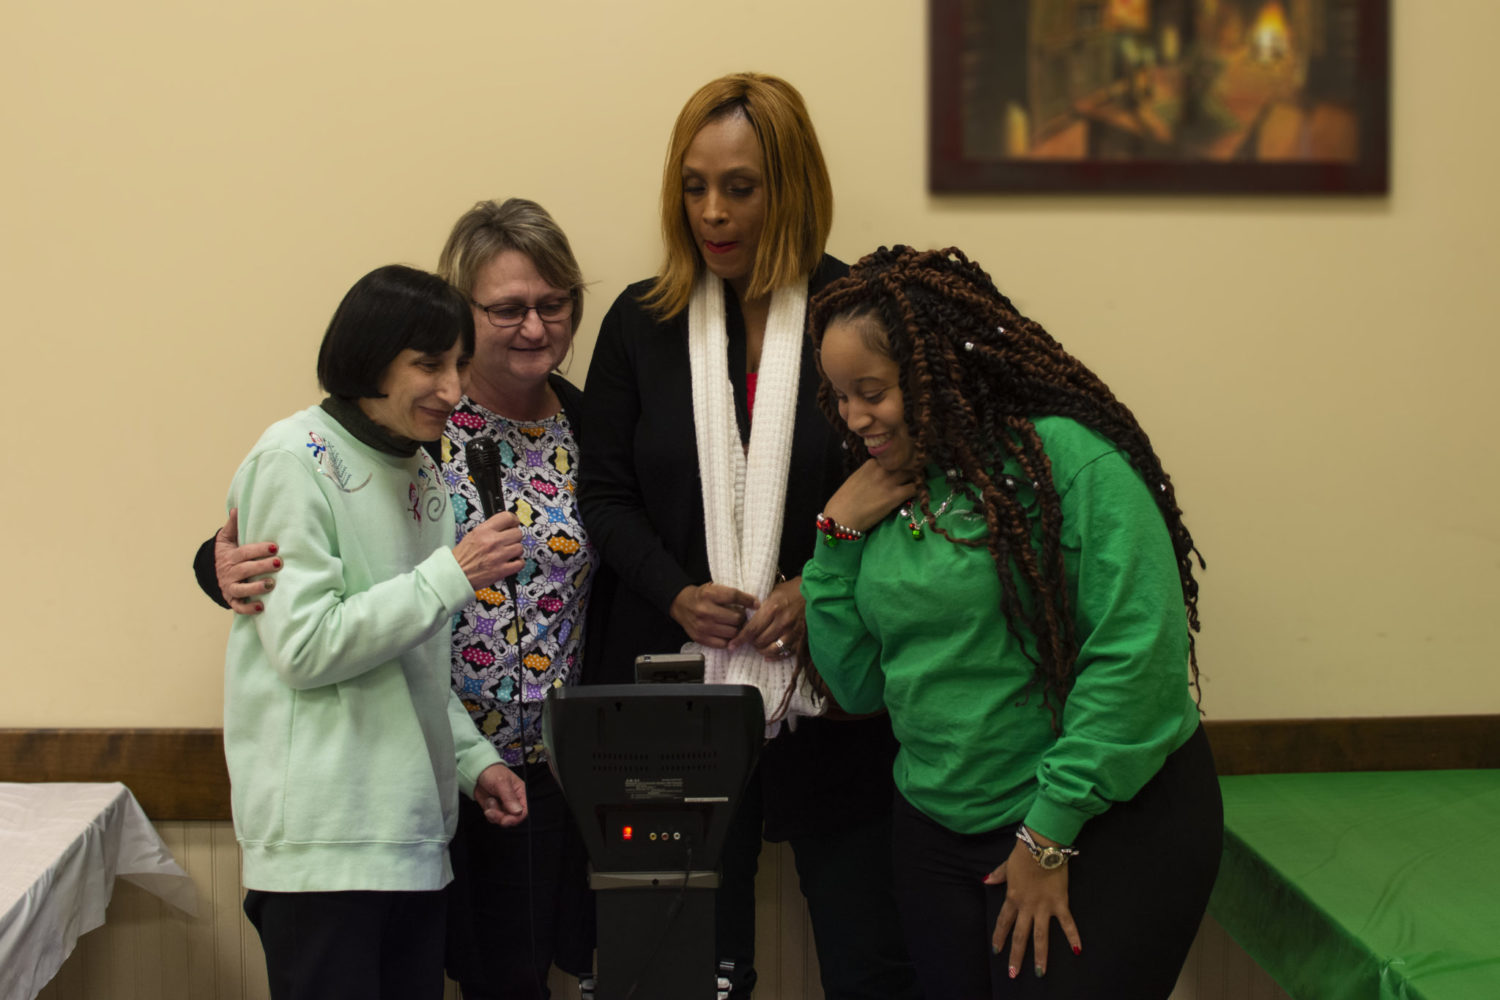 A group of four women sing Christmas carols on a karaoke machine